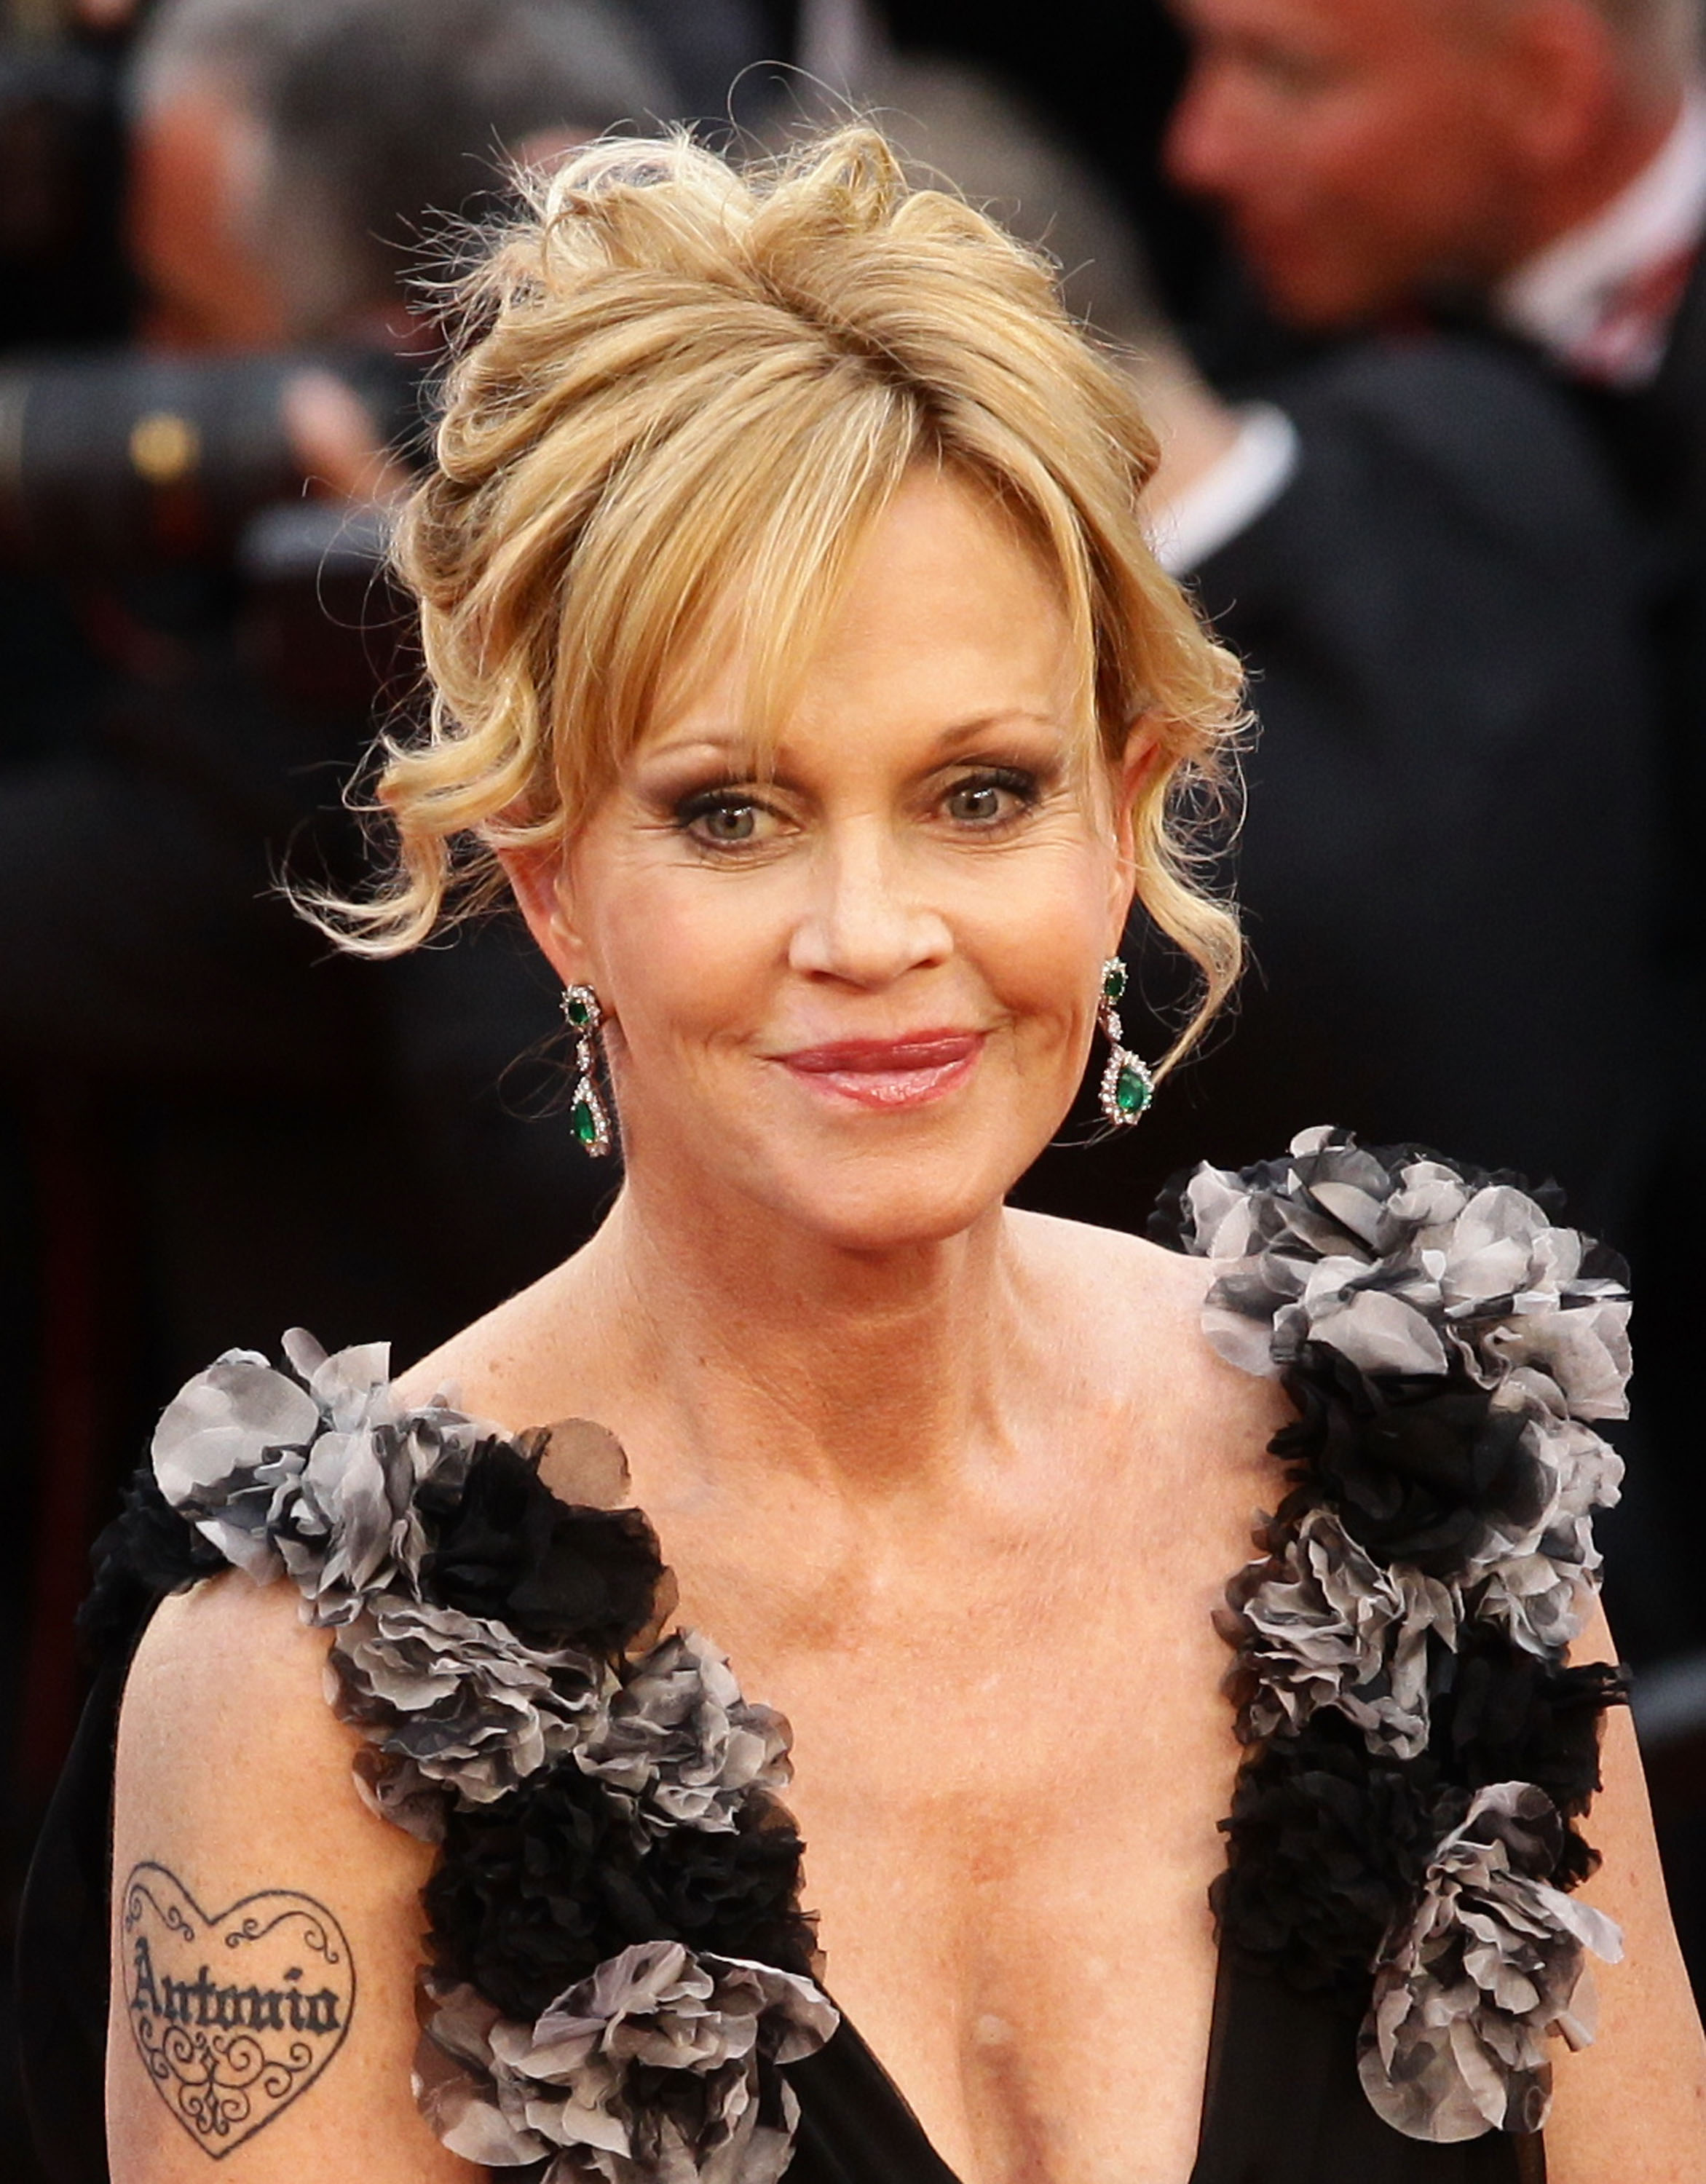 Melanie Griffith attends the Opening Ceremony at the Palais des Festivals during the 64th Cannes Film Festival on May 11, 2011 in Cannes, France.